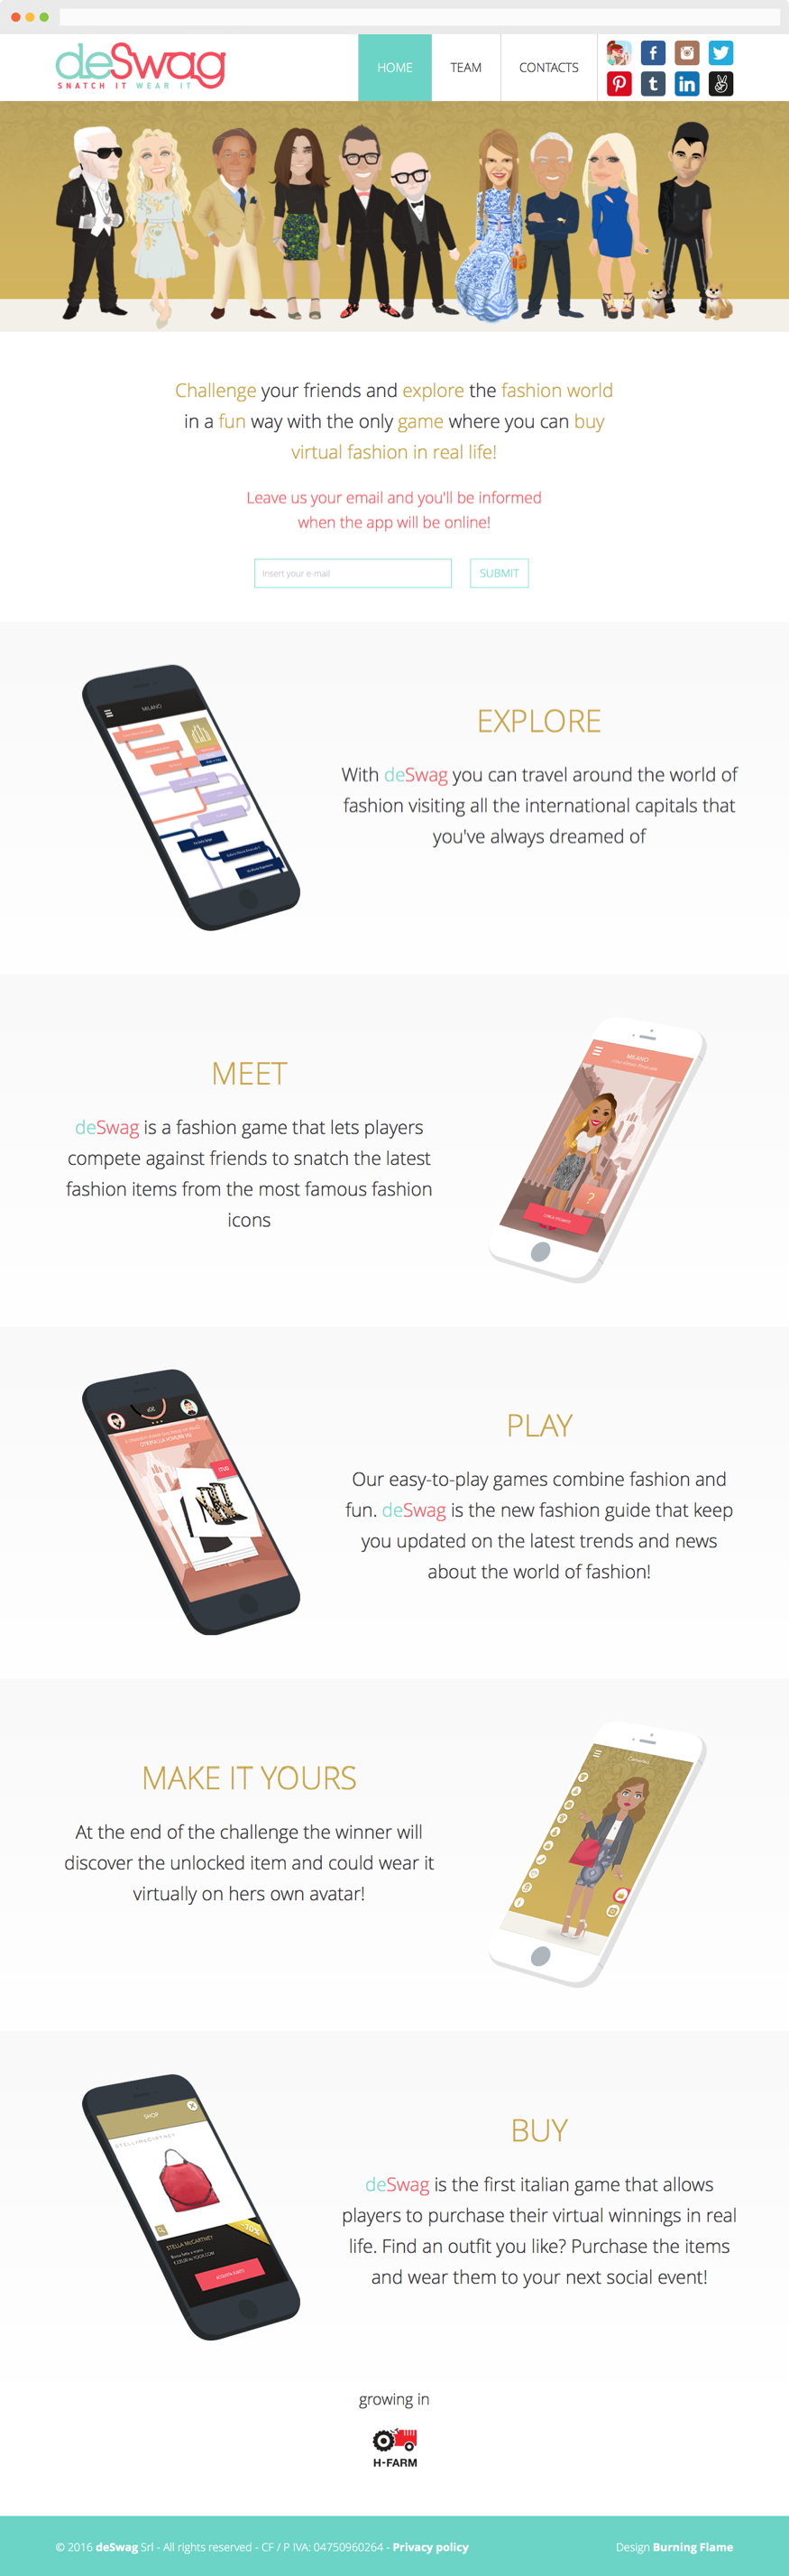 deSwag is a fashion mobile game, a project born from a thesis at the IED Fashion Milan and incubated in H-FARM. The basic idea is to combine the markets of fashion and video games, through an app that uses gamification to offer a new shopping experience. #website #webdesign #webdevelopment #html5 #php #css #js #jquery #responsive #mobile